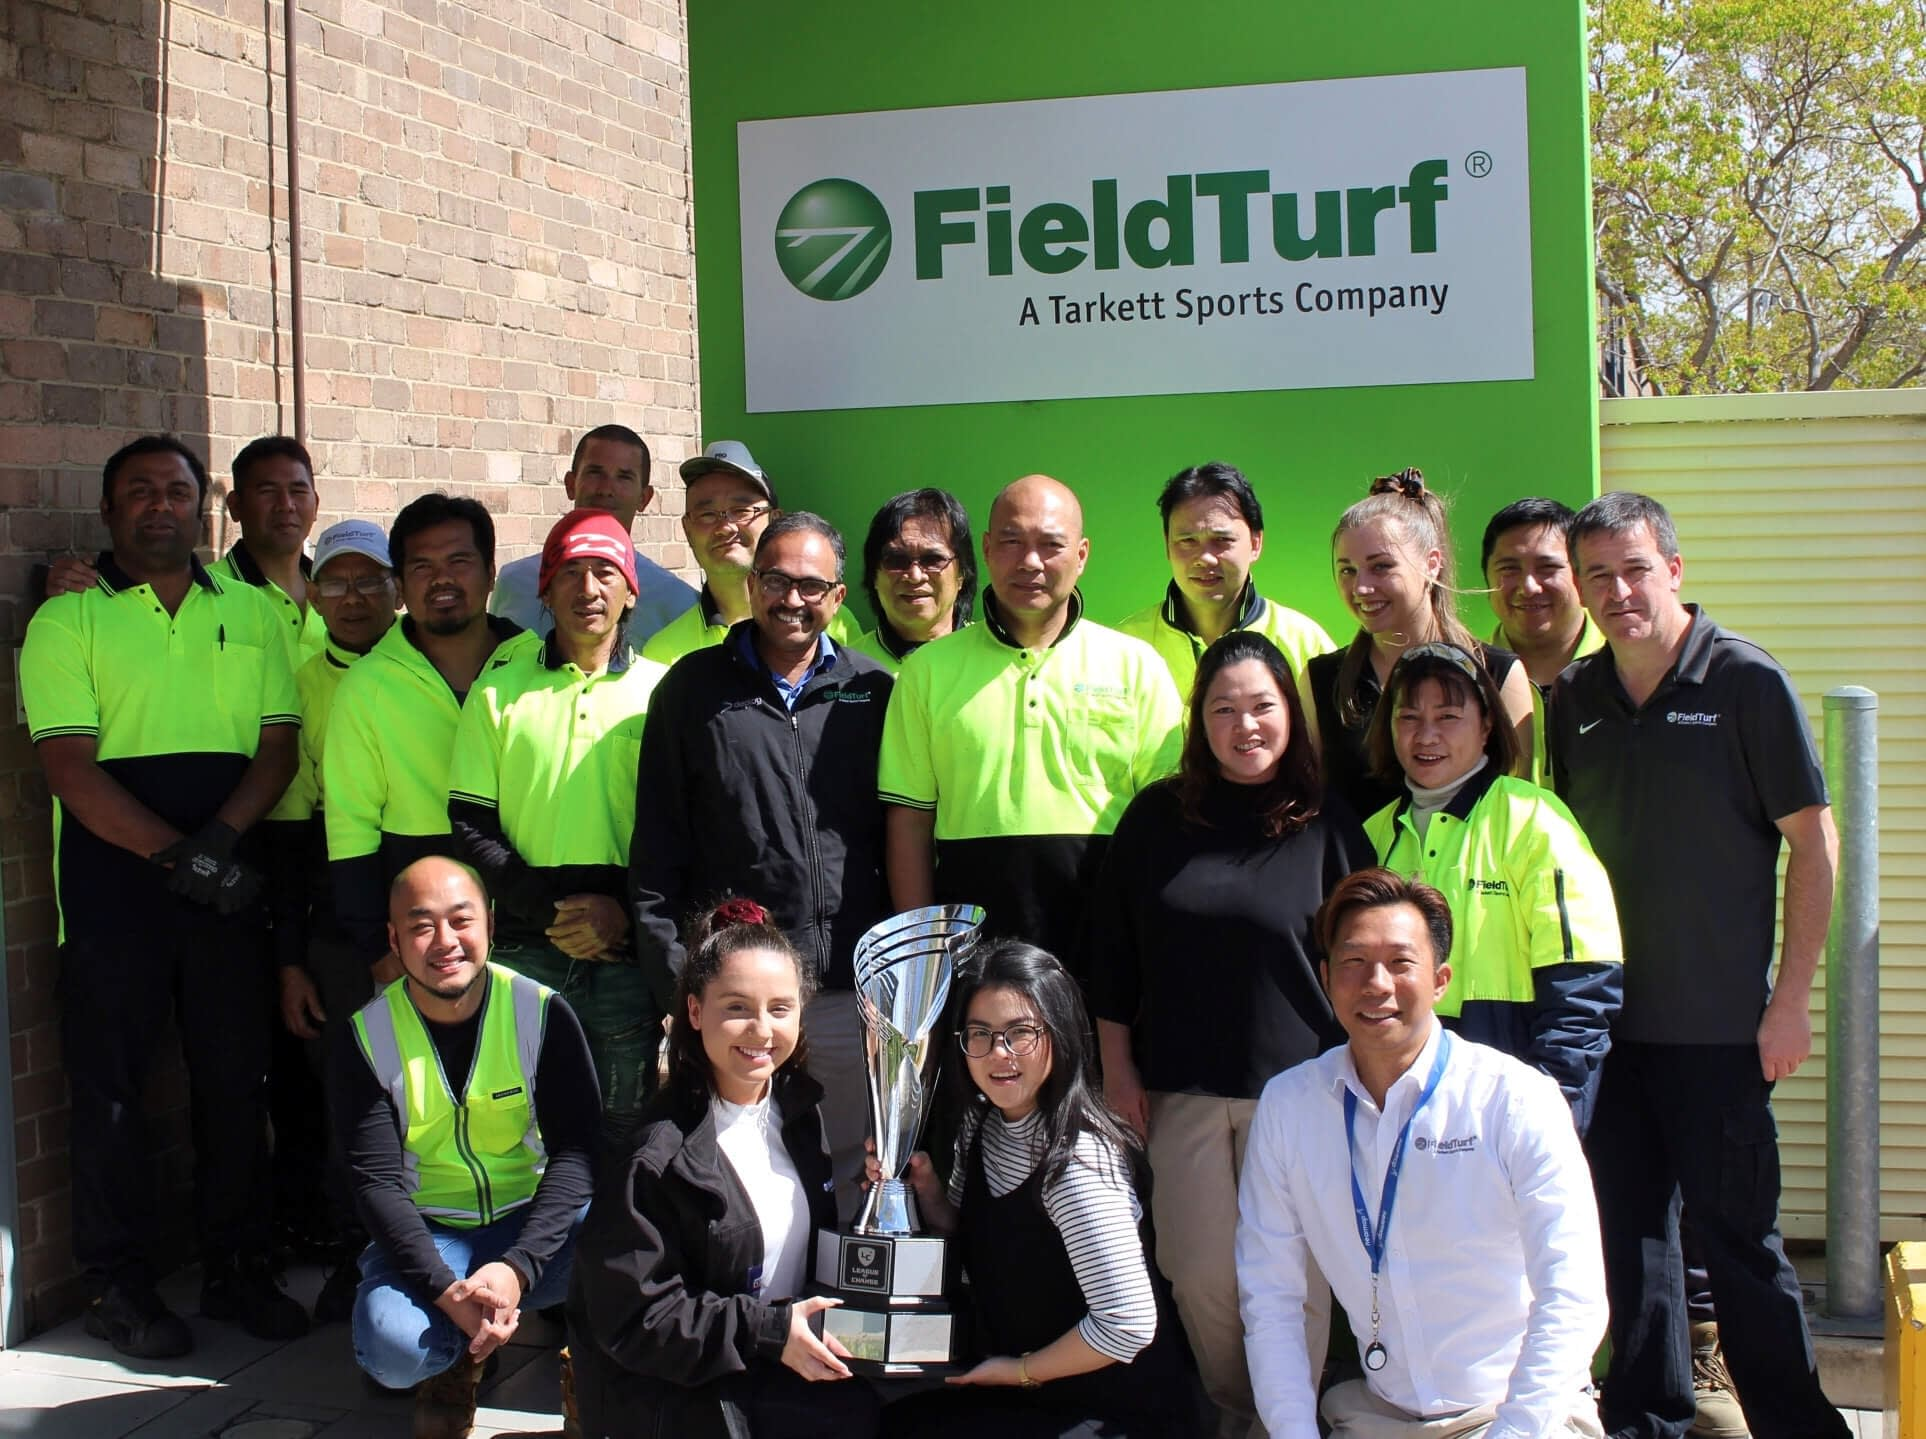 About FieldTurf Australia